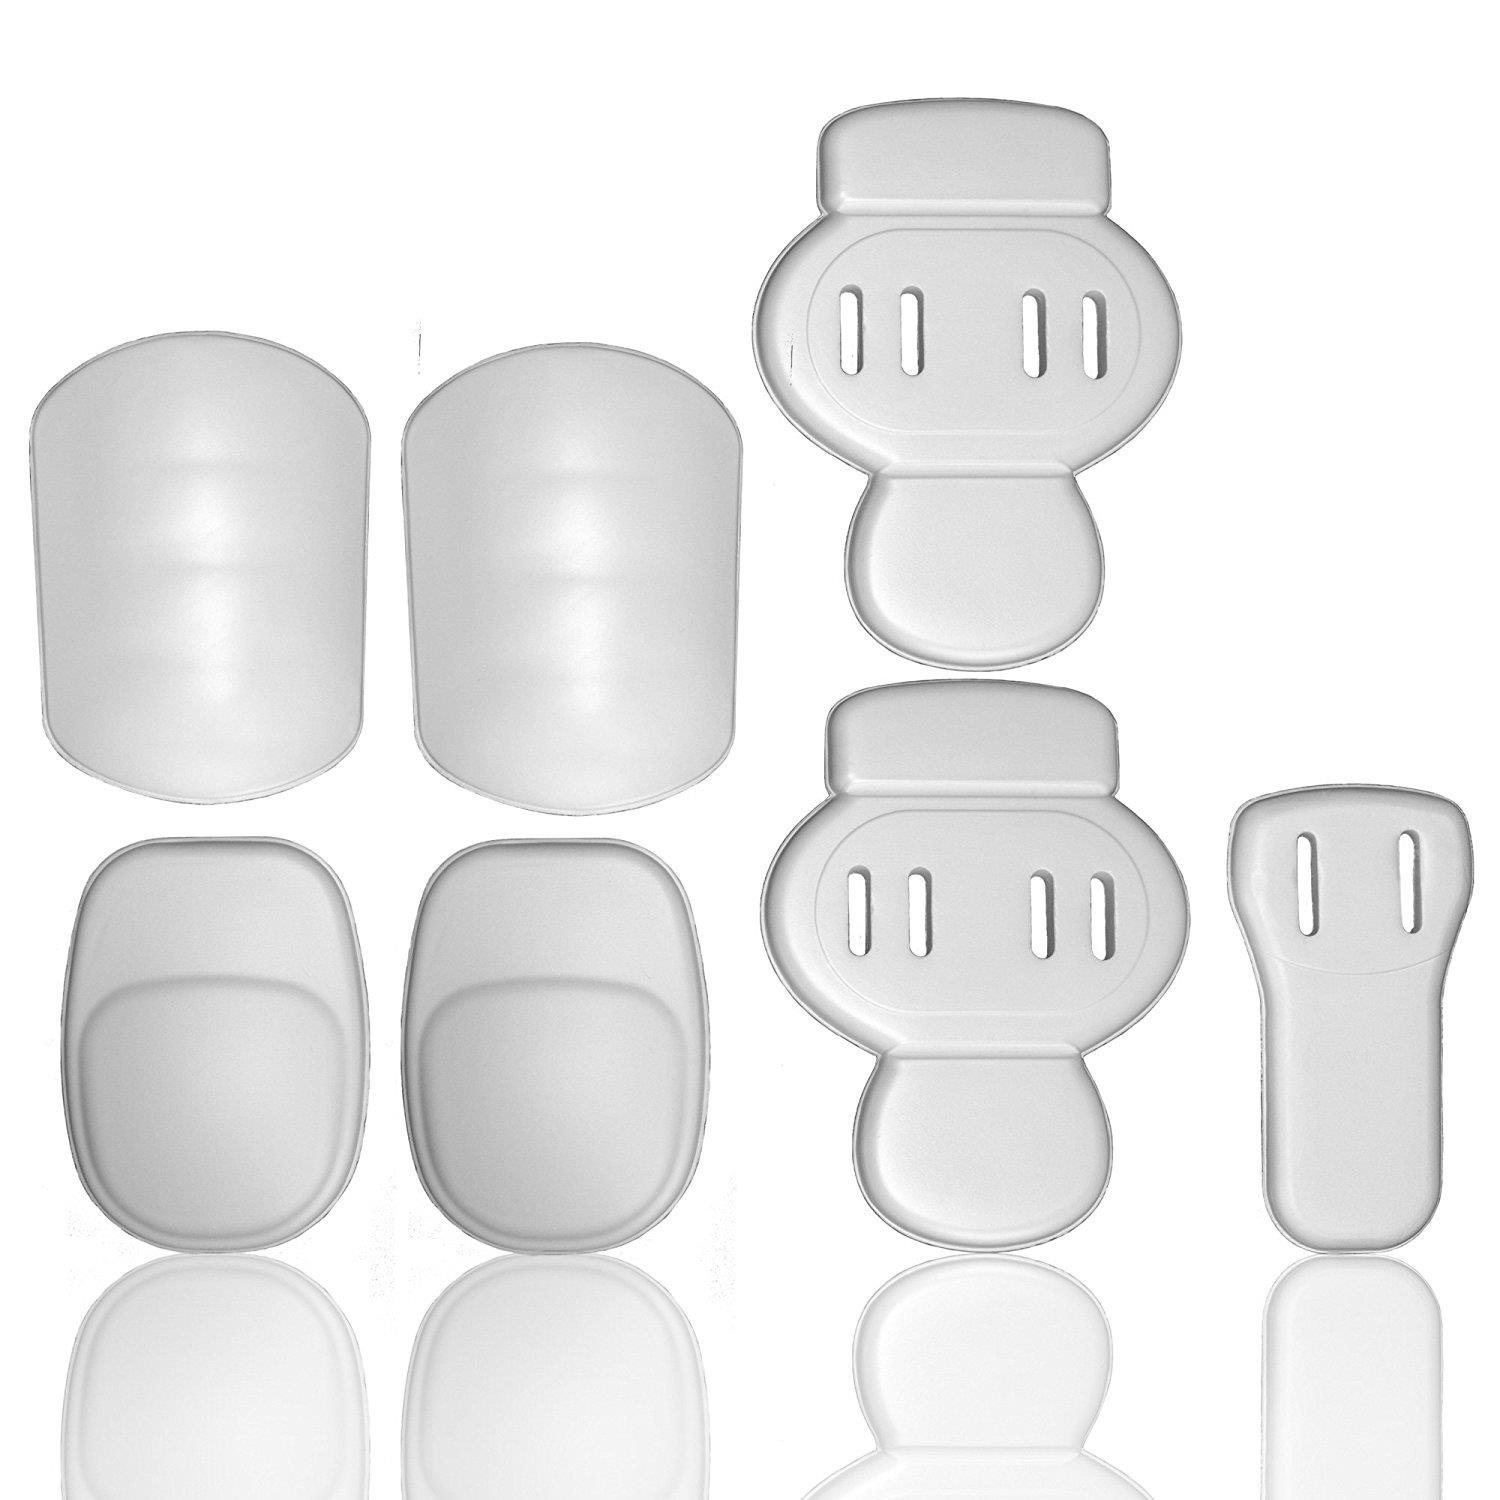 Full Force American Football 7Piece Padset Talla Senior, color blanco, One size Full Force Wear